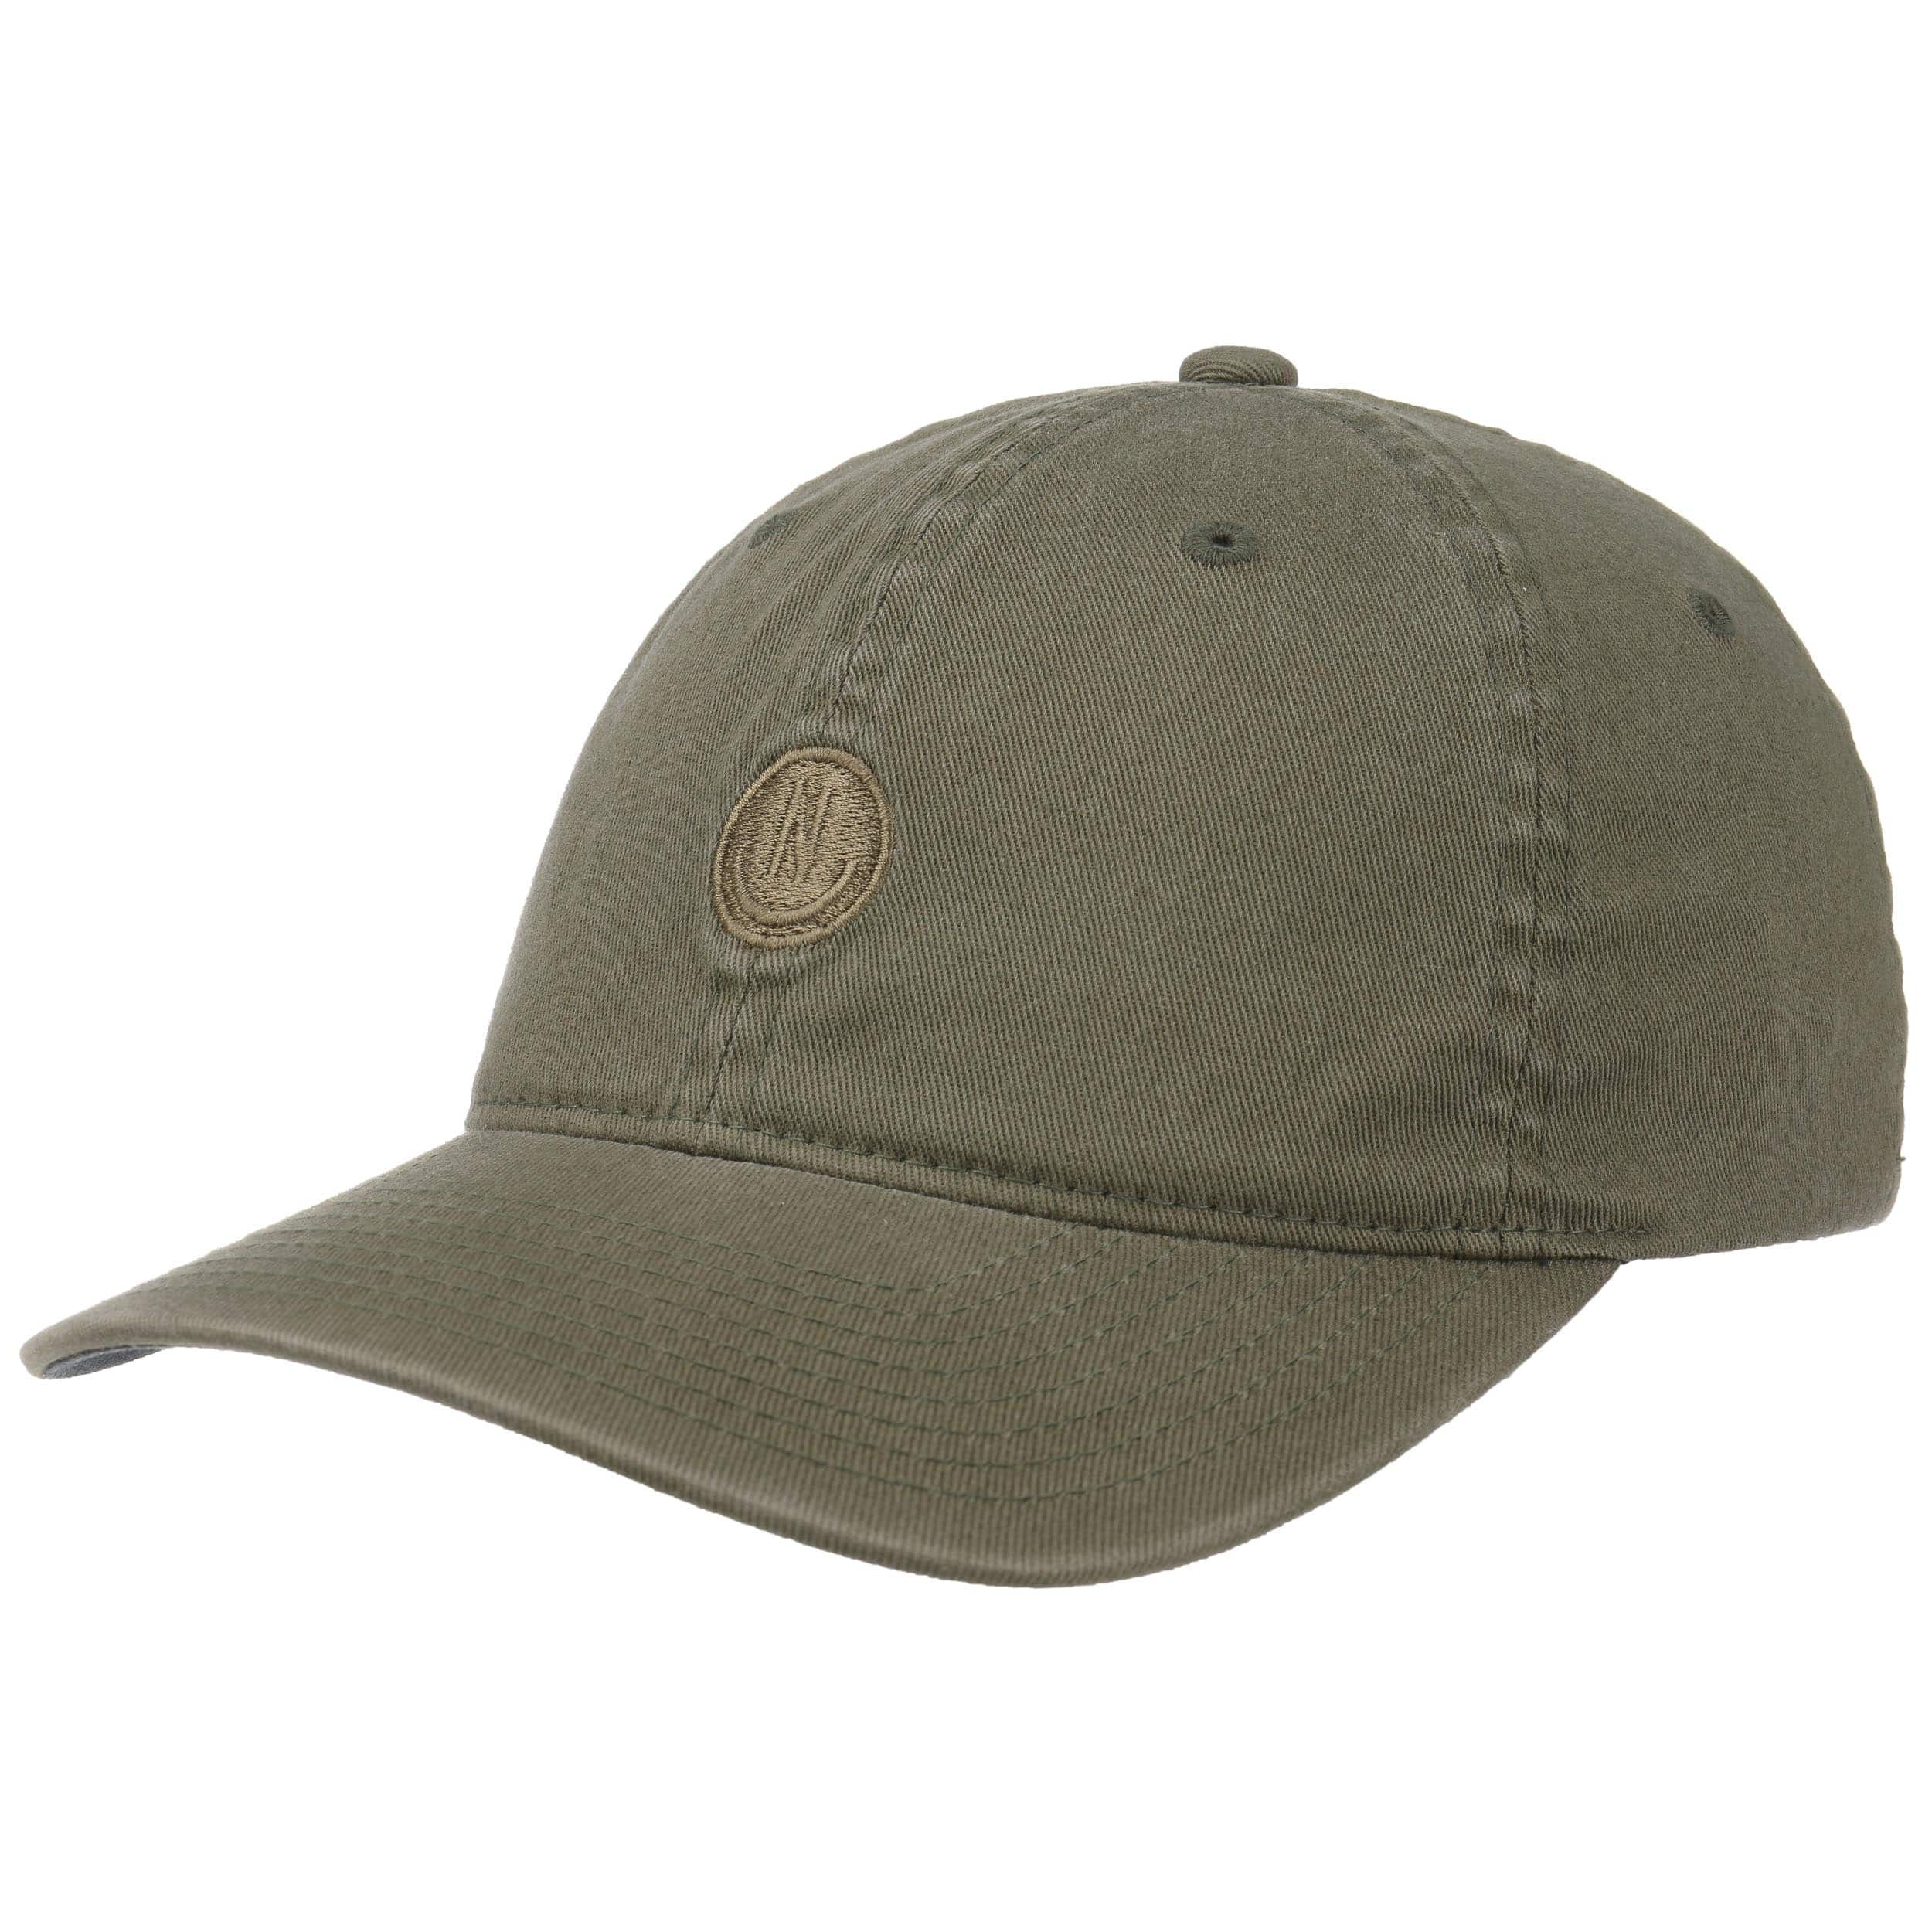 ... Daily Stretch Fitted Cap by Neff - olive 5 ... 5d79db1a8fa9